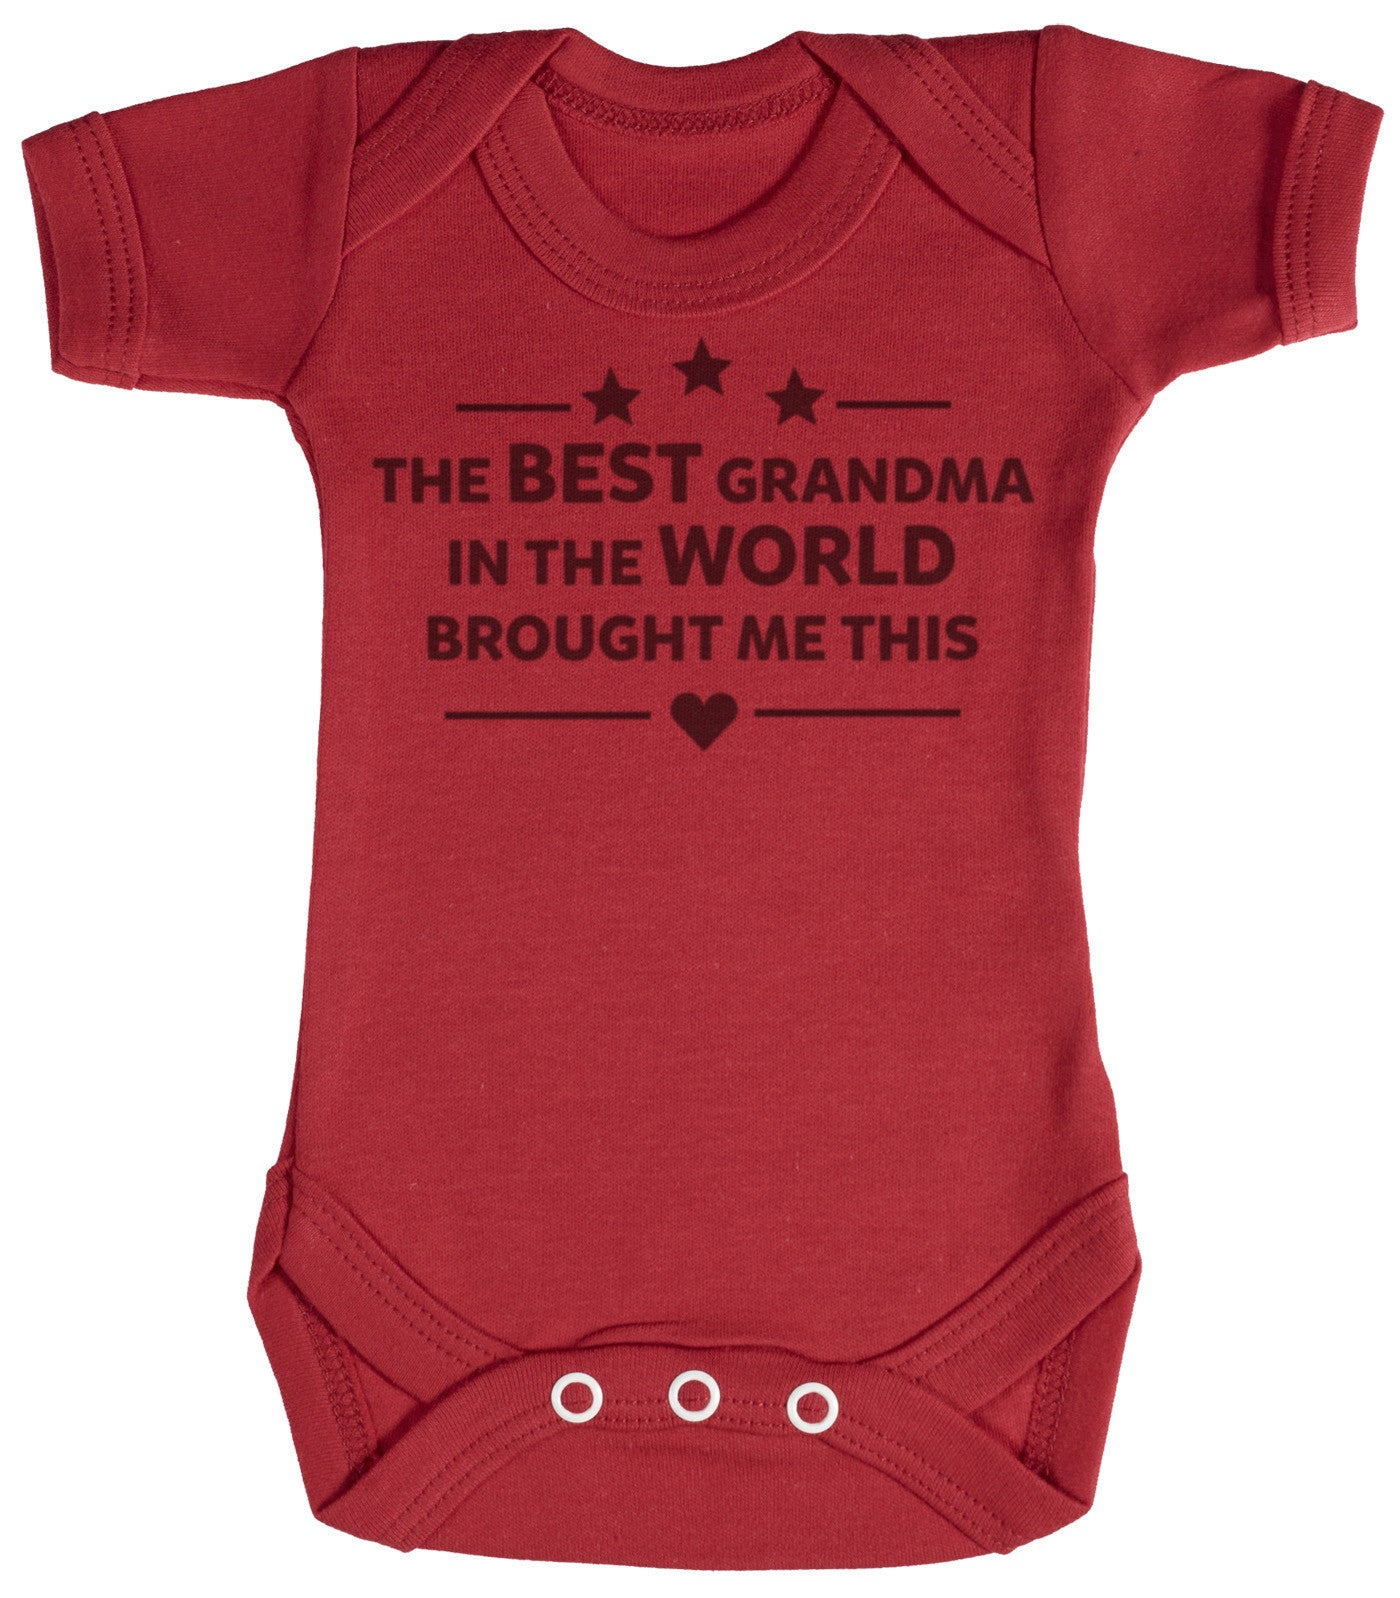 The Best Grandma In The World Baby Bodysuit / Babygrow